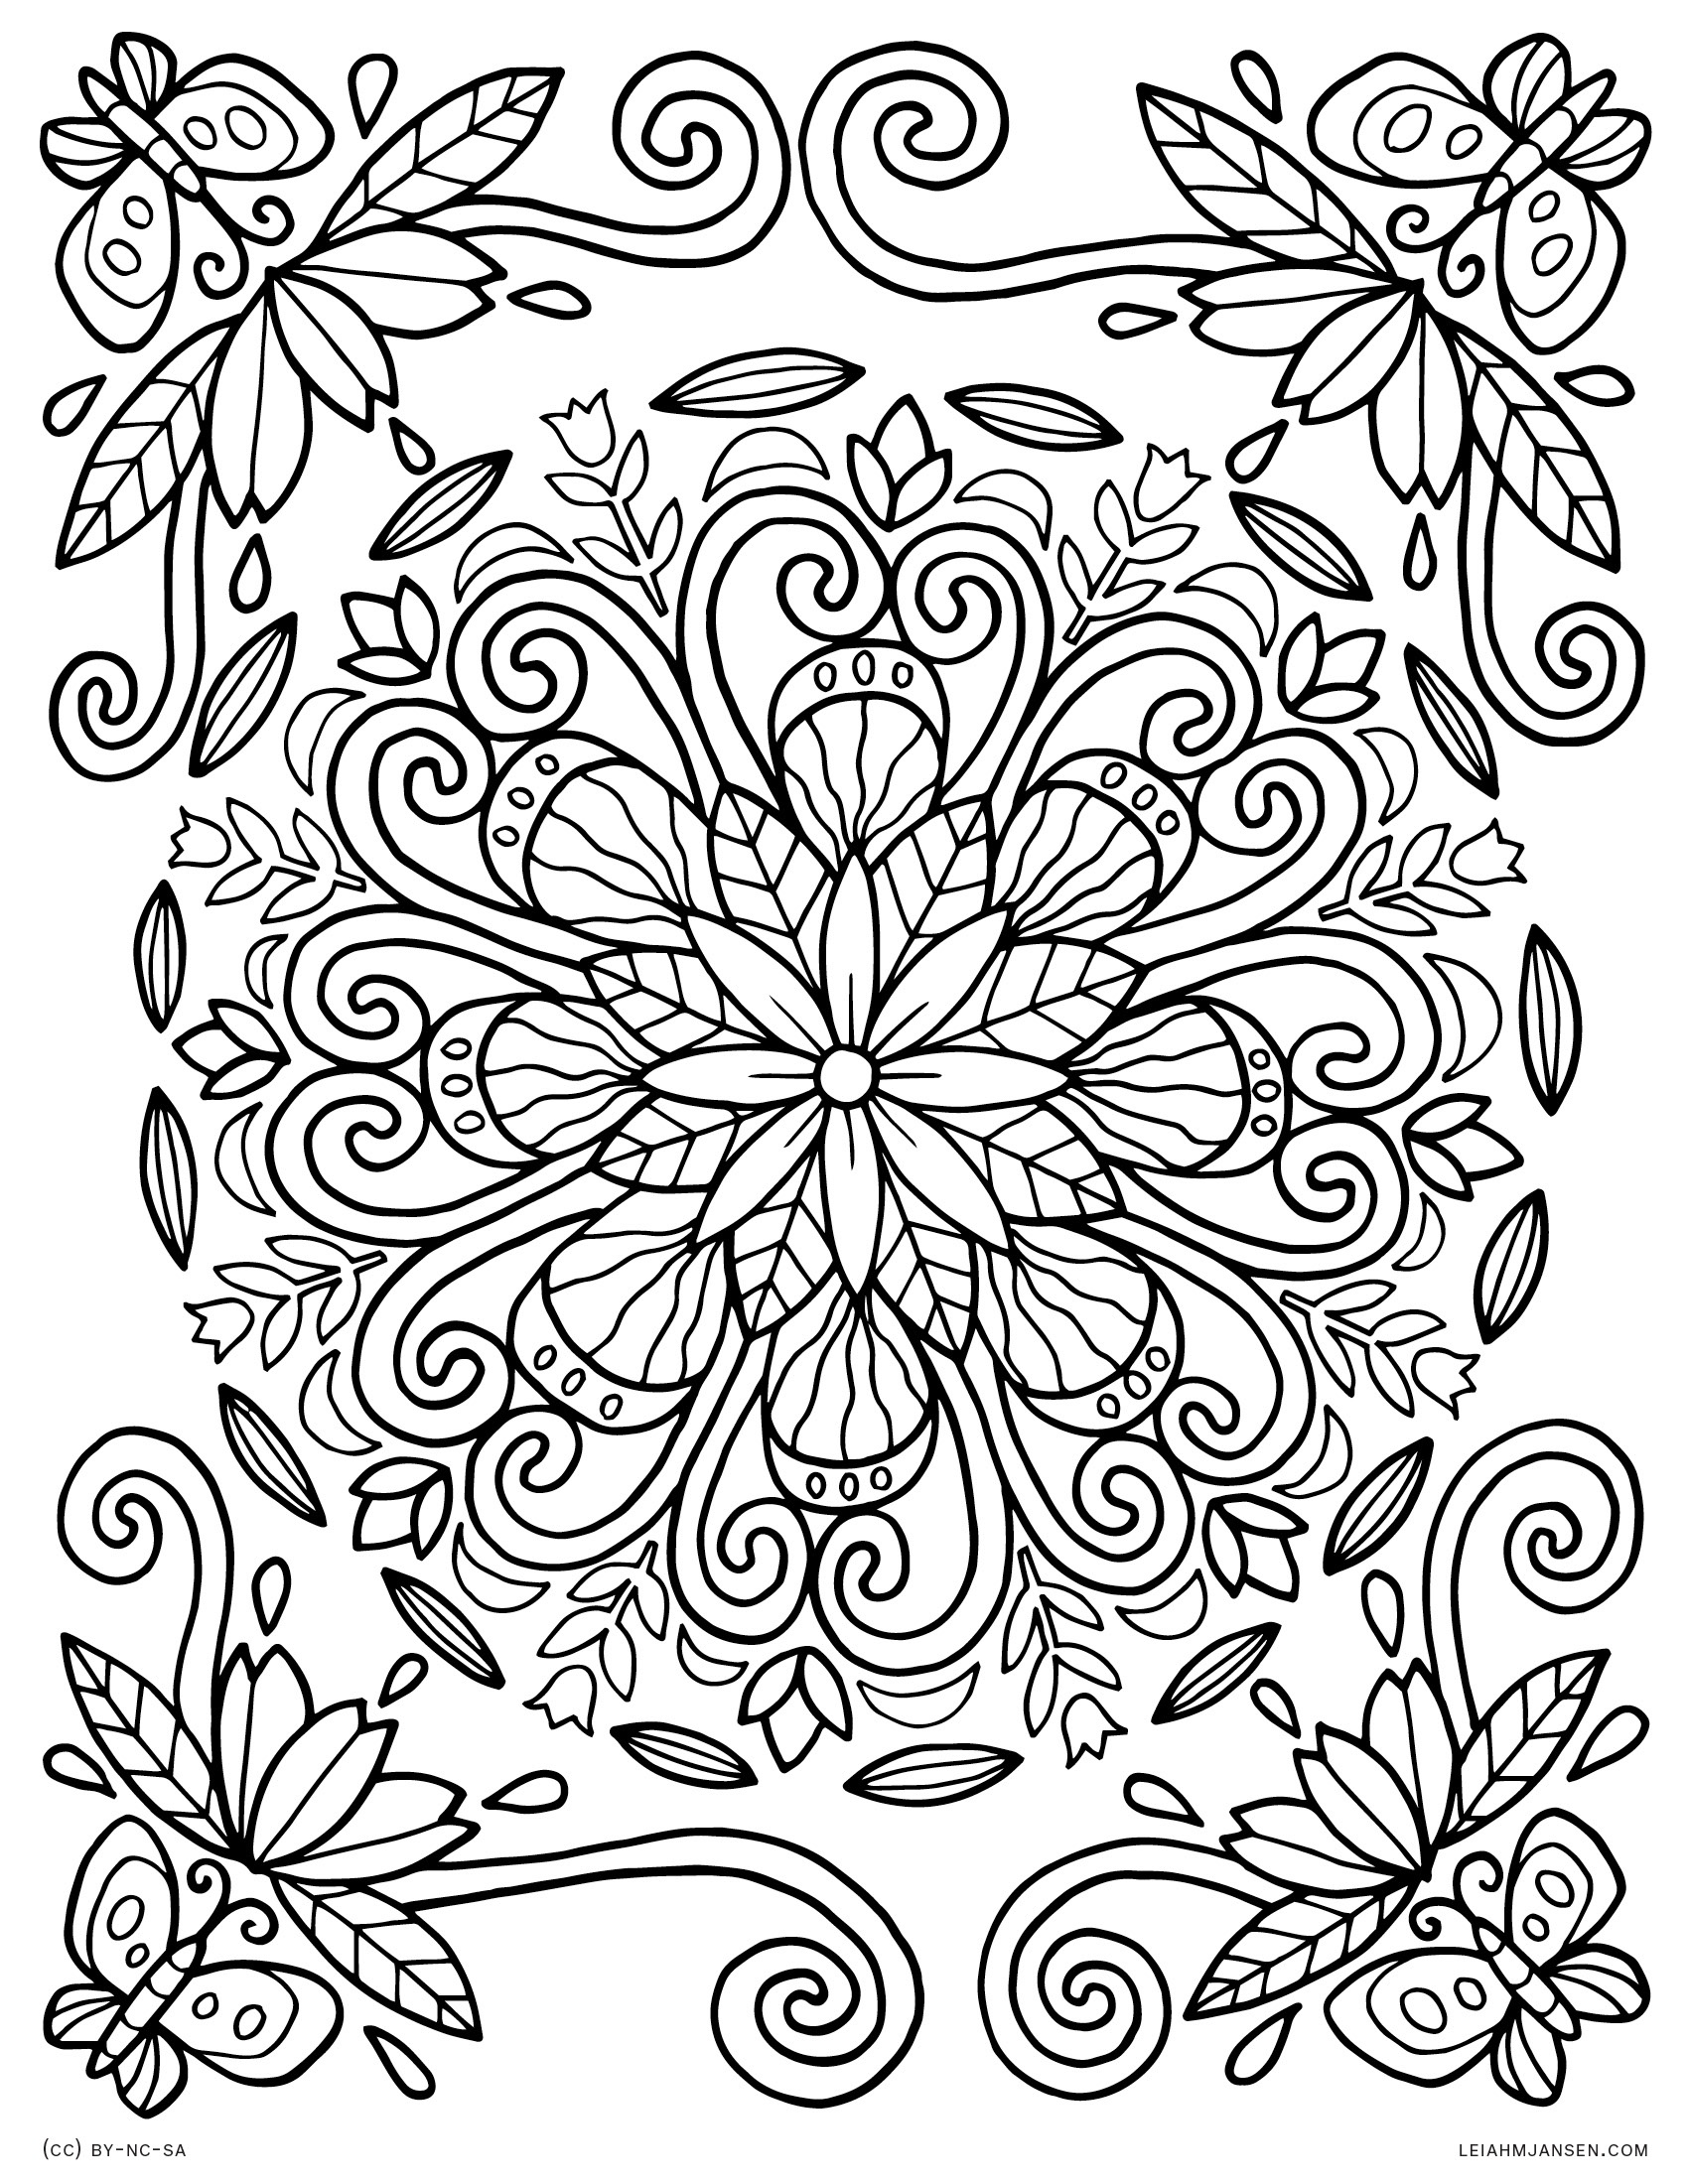 Coloring Pages - Free Printable Nature Coloring Pages